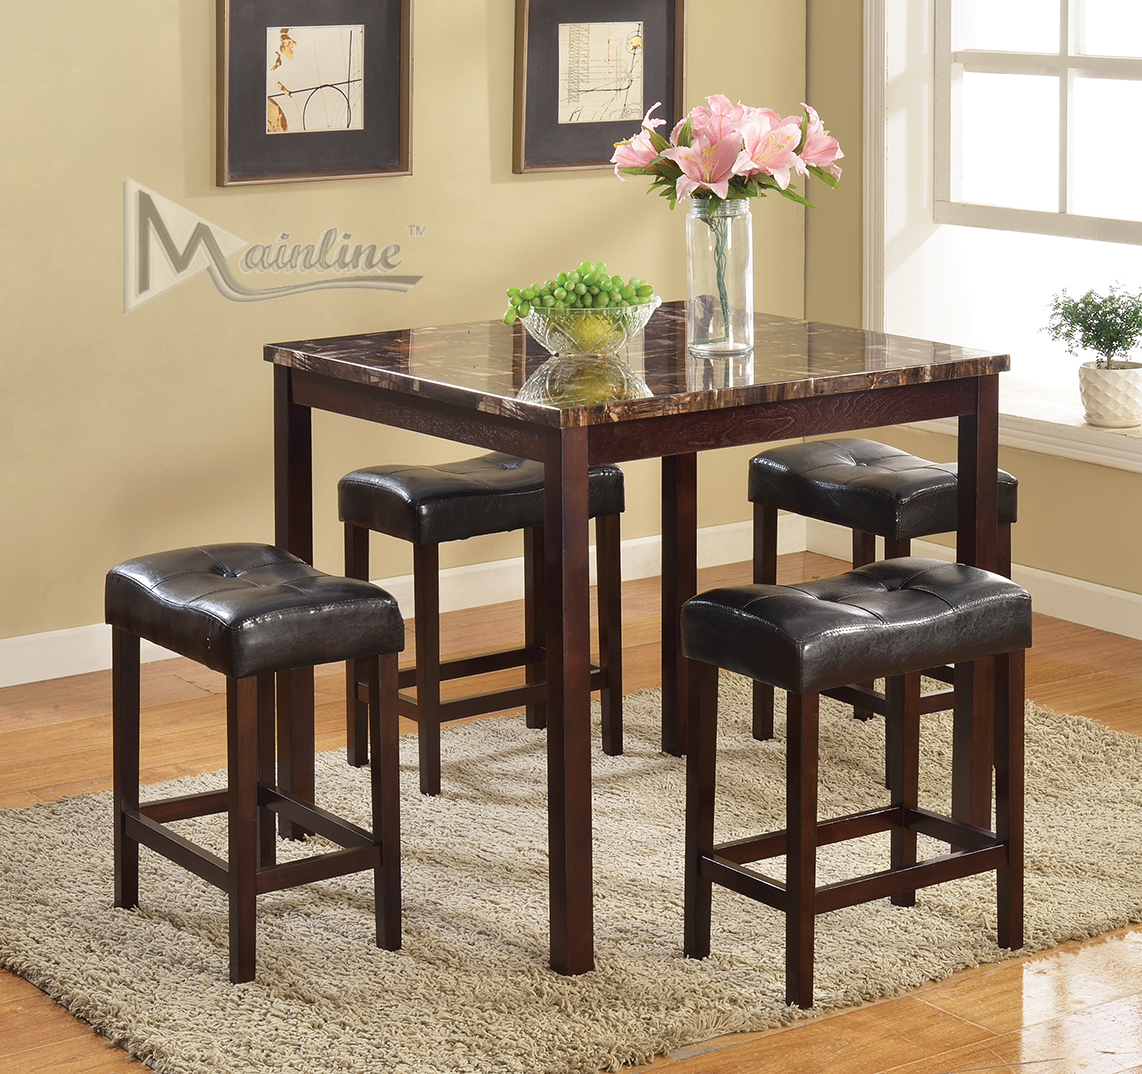 Stool and Table Discount Dinette Set